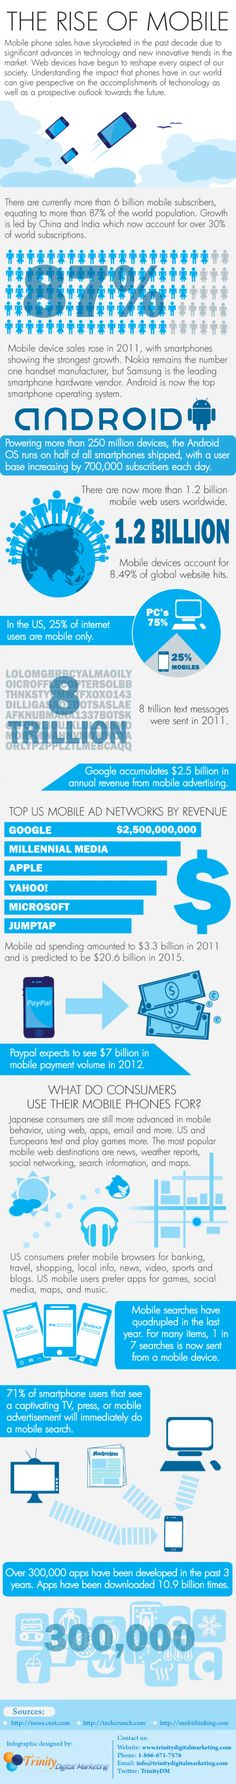 Mobile stats 2012